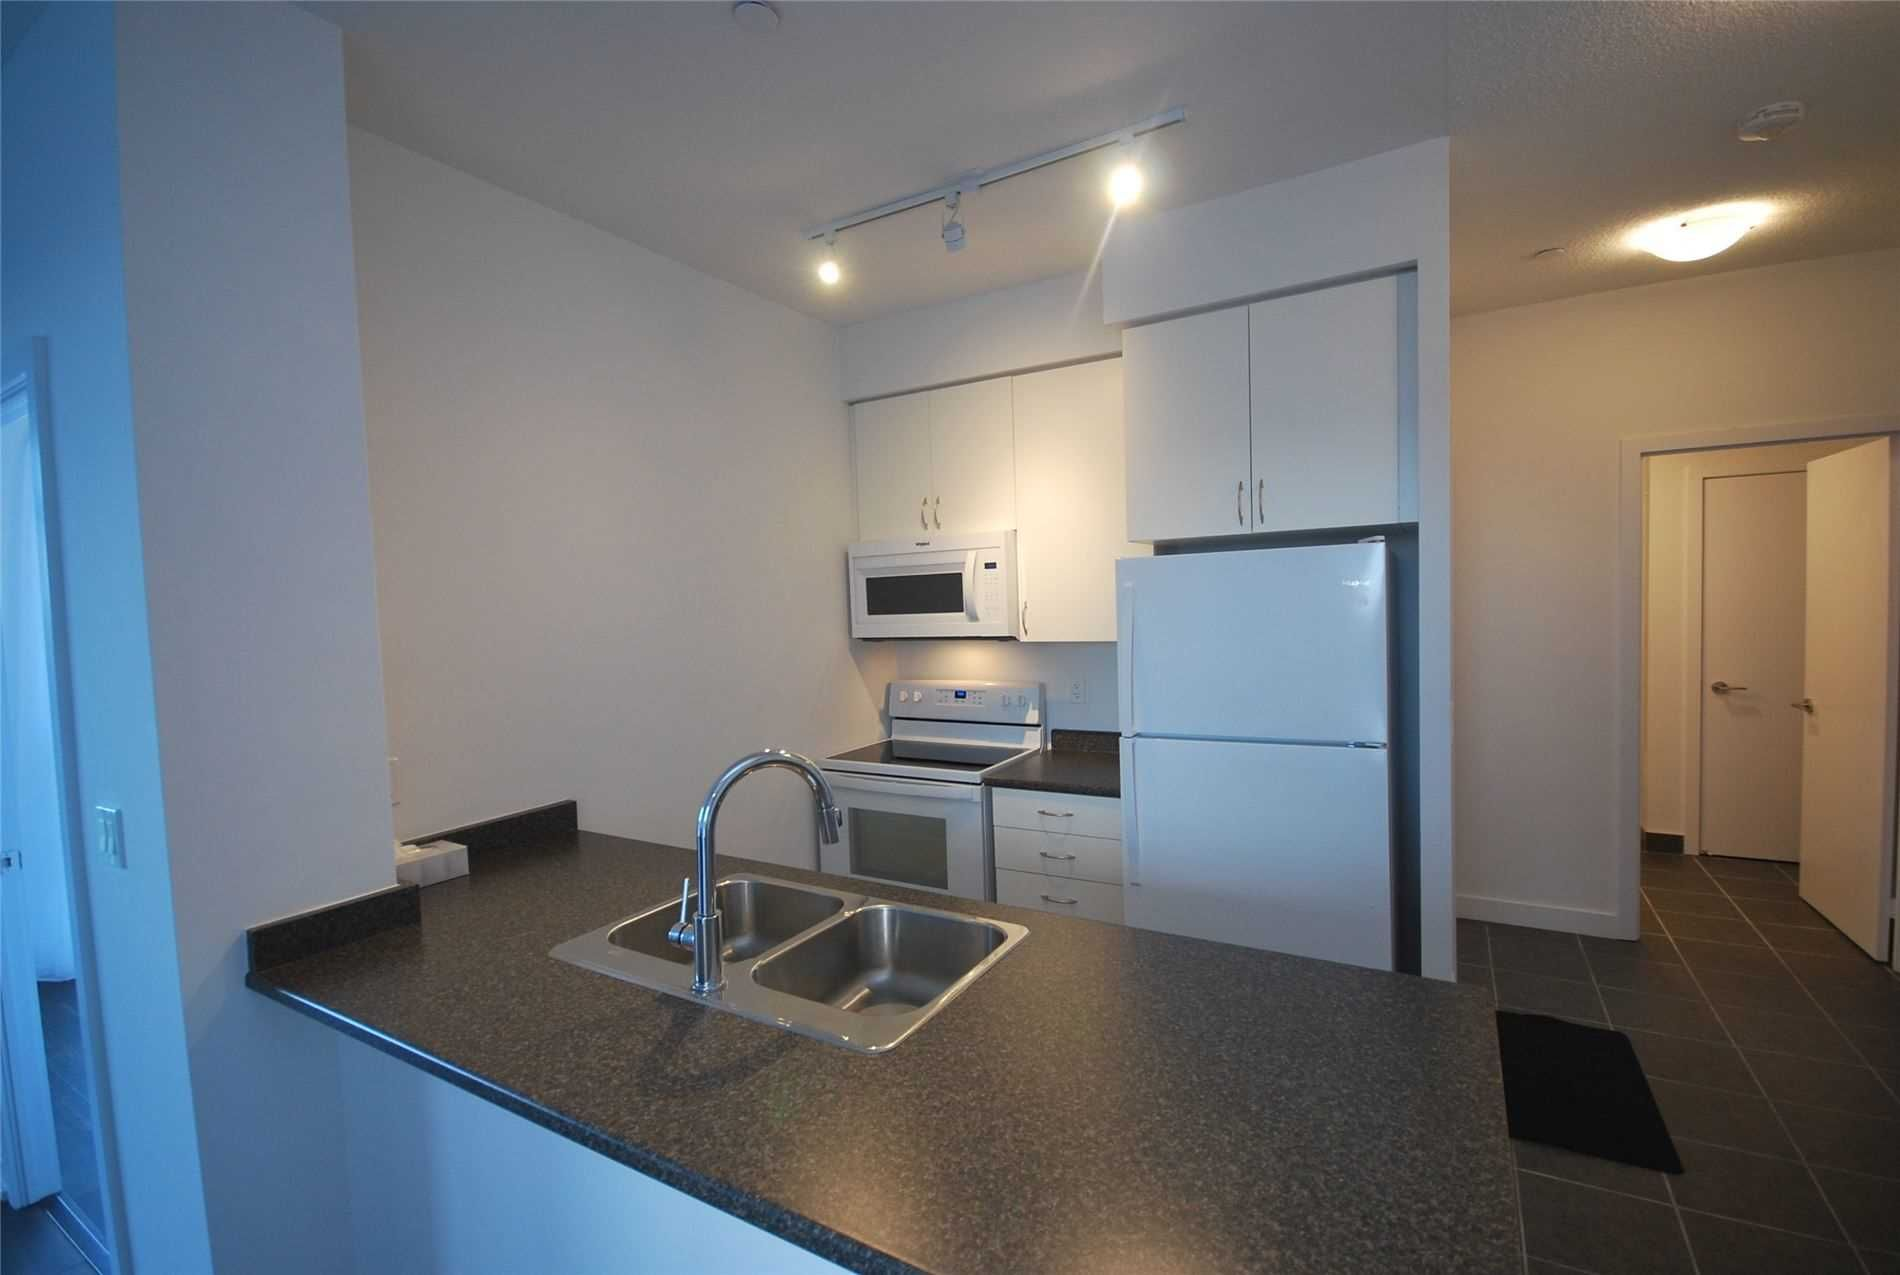 8 Trent Ave, unit 1206 for rent in Toronto - image #2